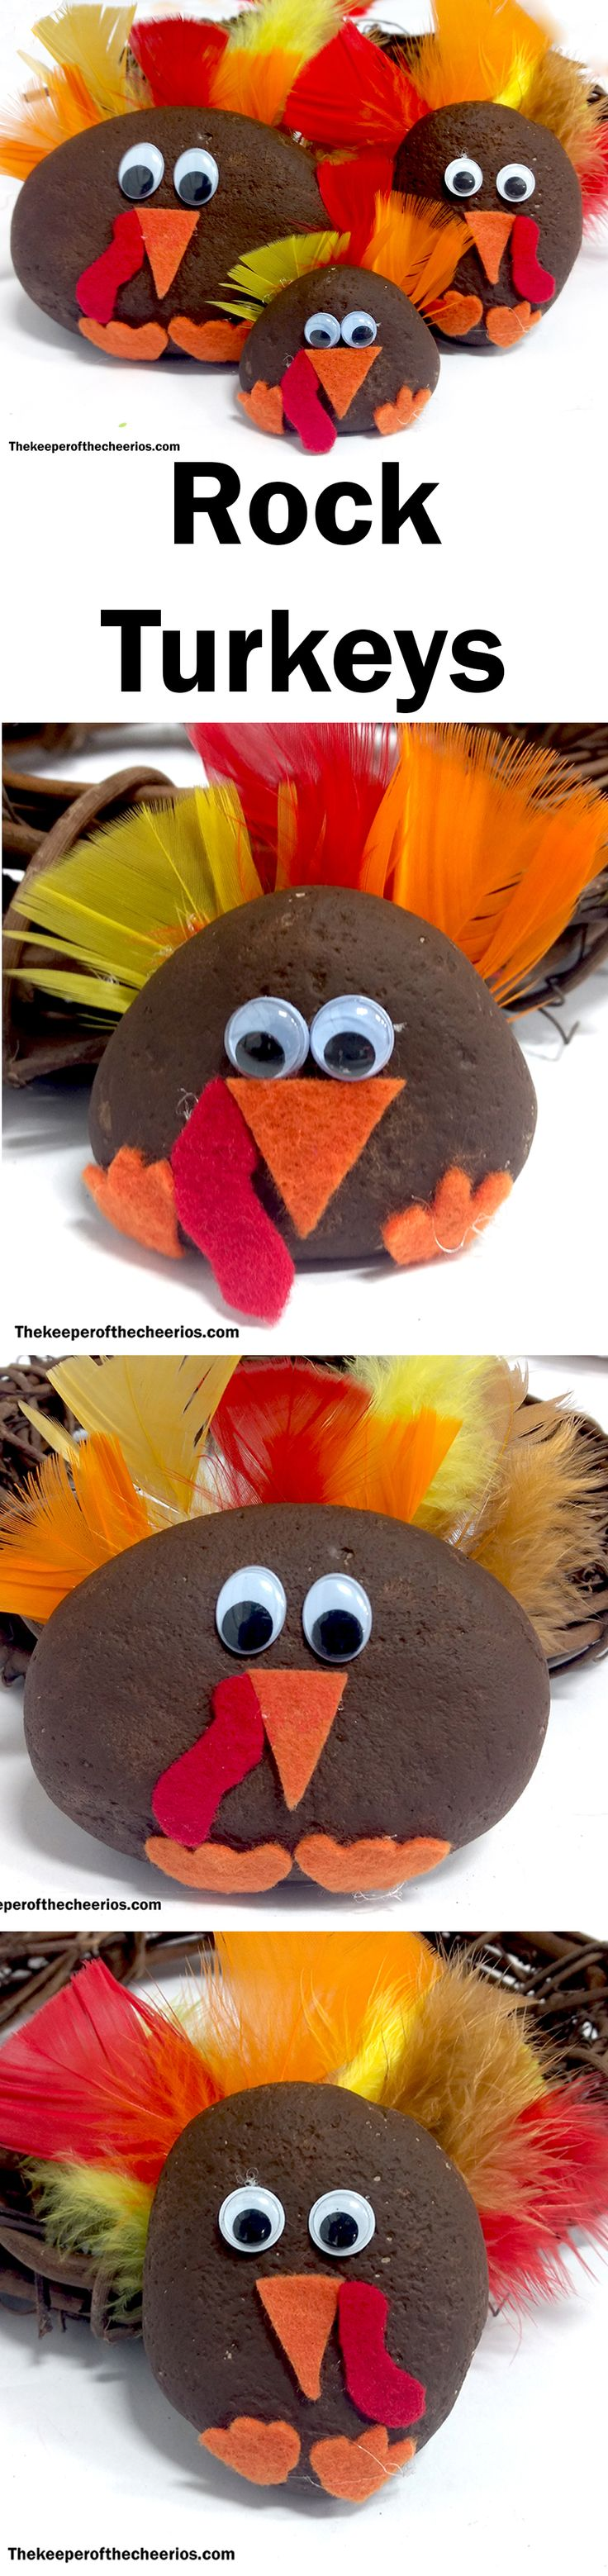 Painted Rock Turkeys